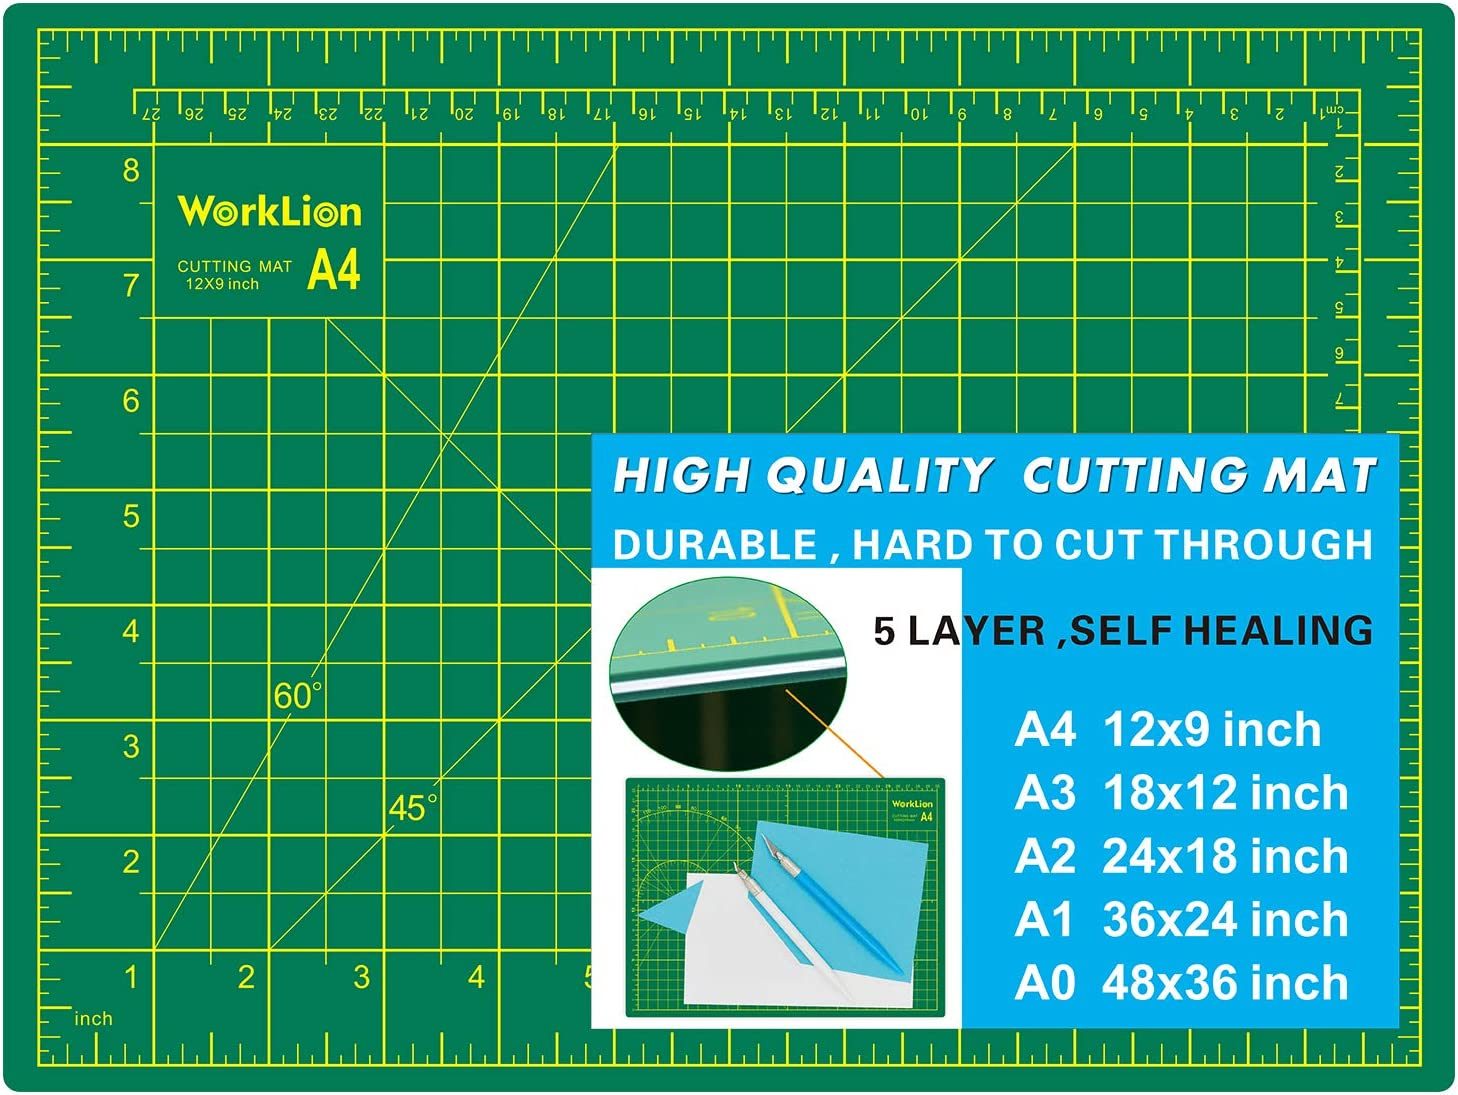 "WORKLION Full 9"" x 12"" Art Self Healing PVC Cutting Mat, Double Sided, Gridded Rotary Cutting Board for Craft, Fabric, Quilting, Sewing, Scrapbooking Project"